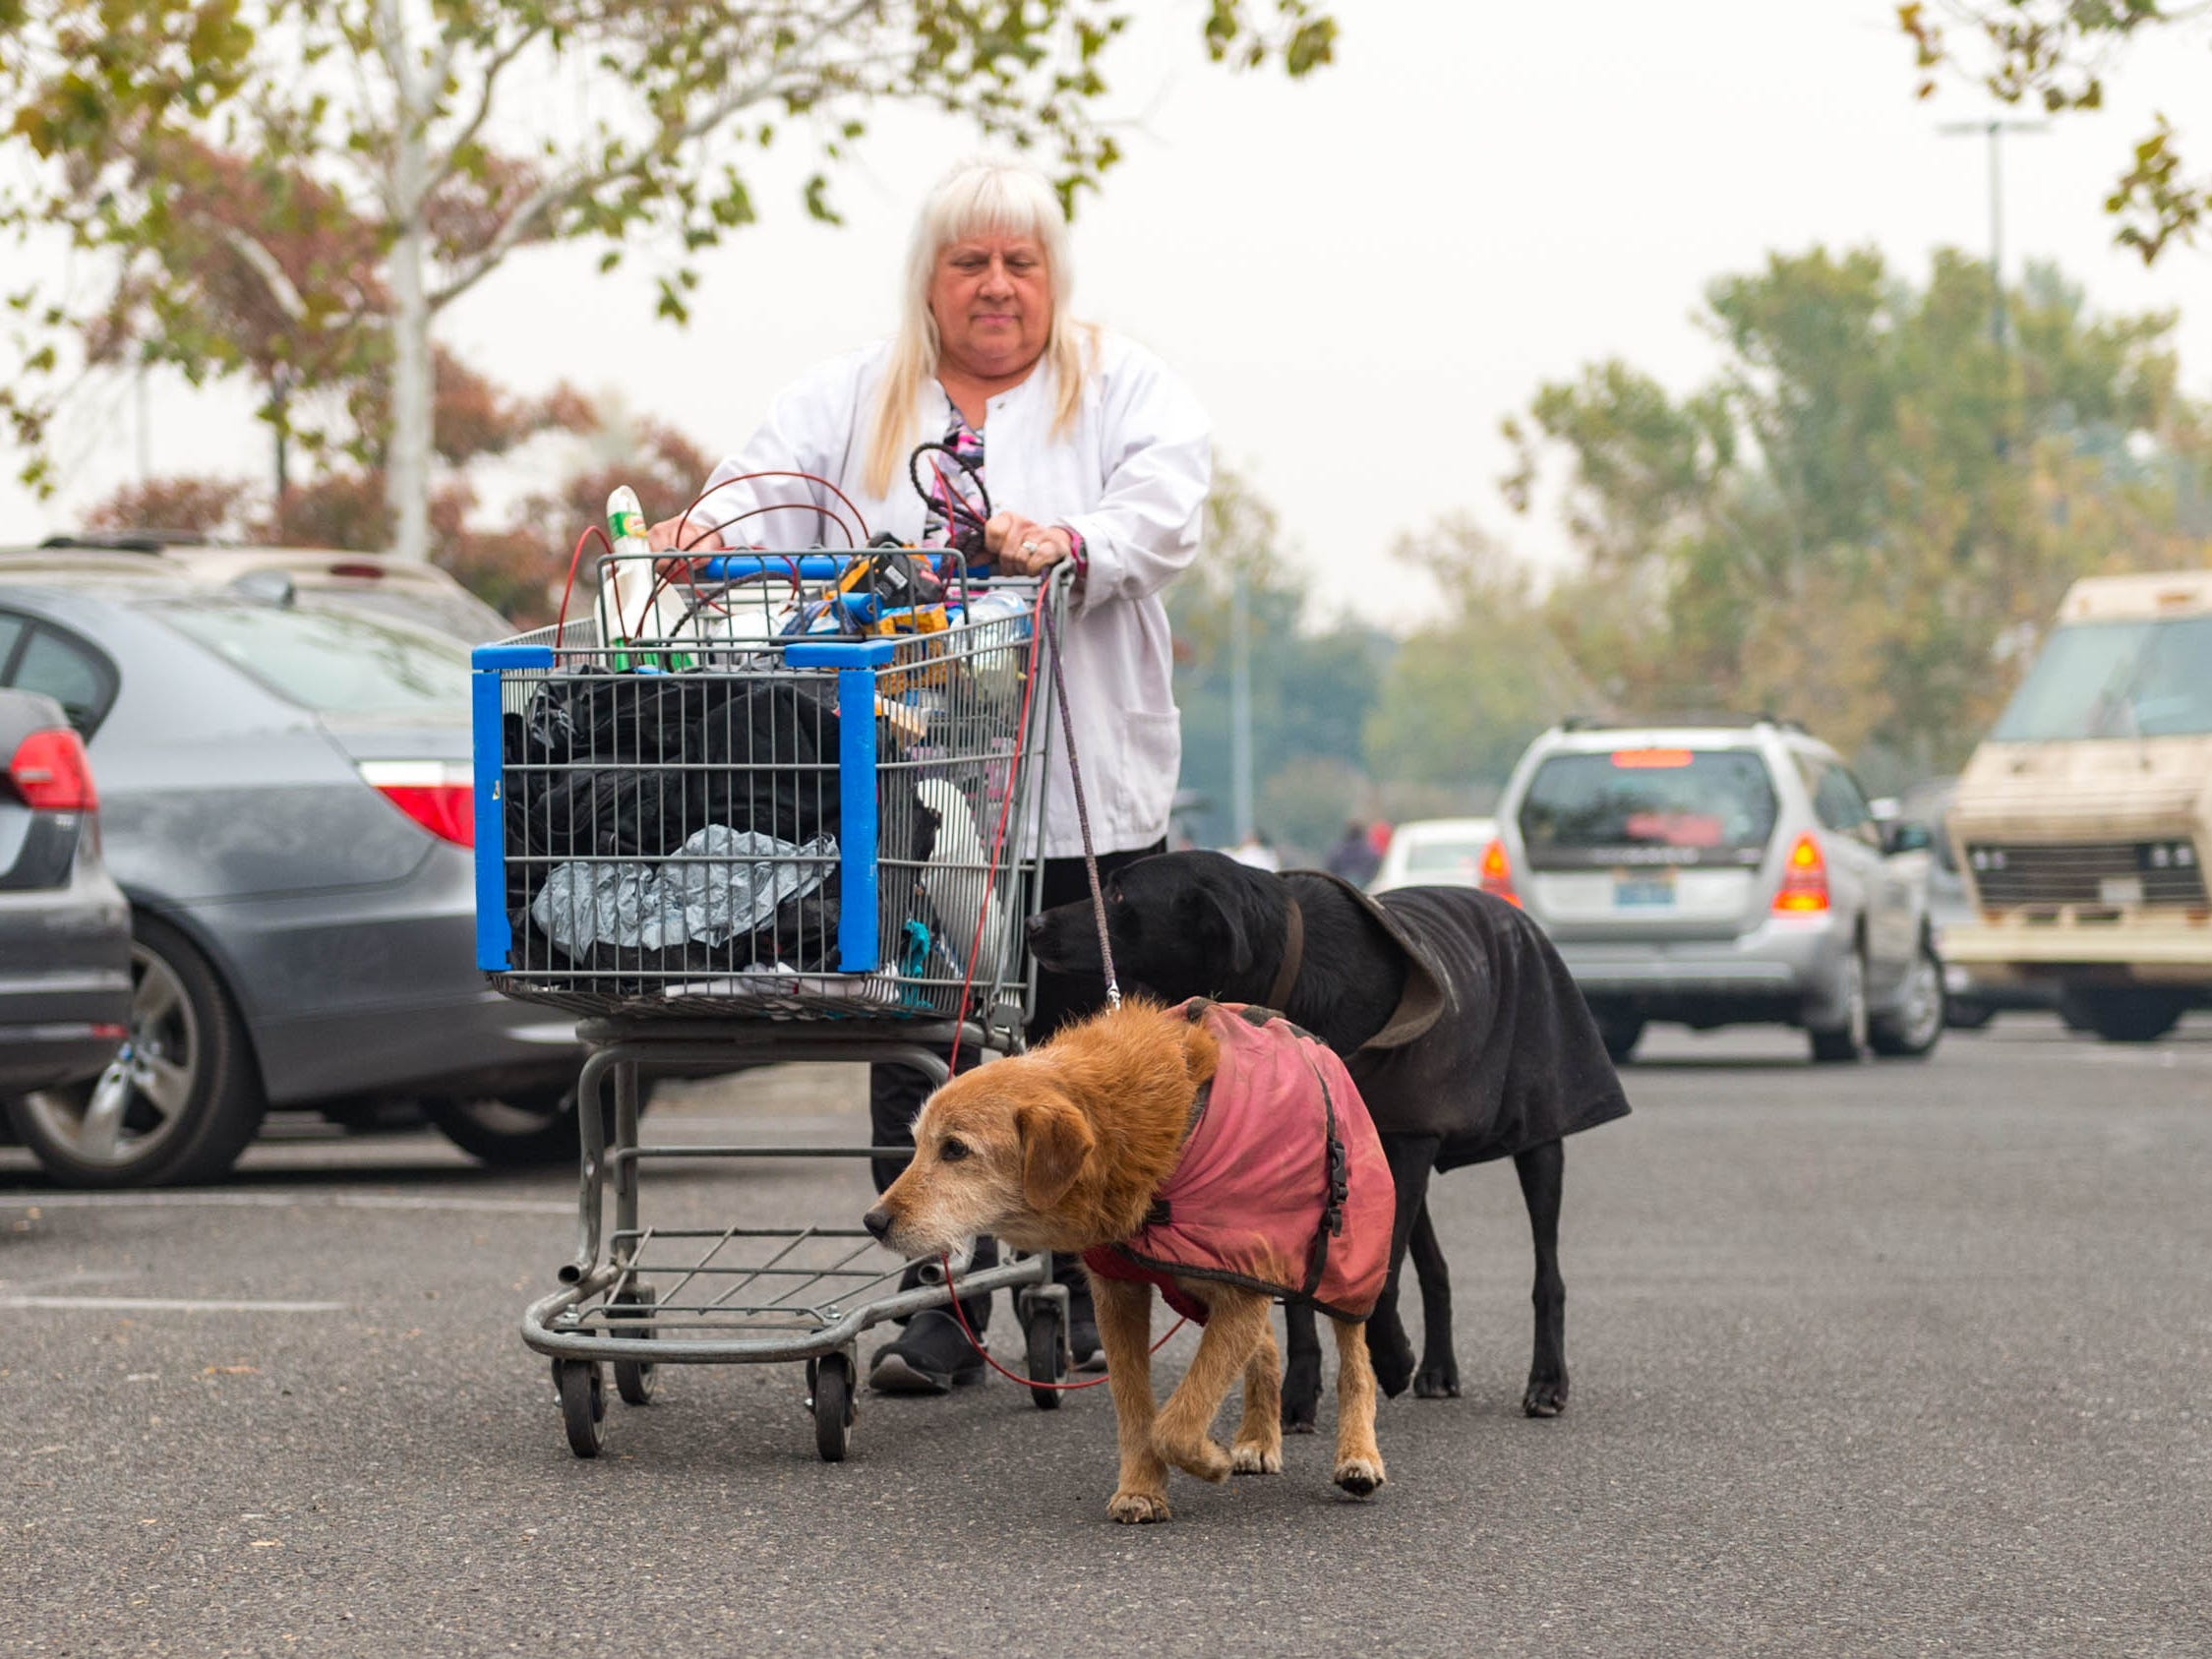 Residents of Paradise, Calif. create a temporary housing away from the fire in a Wal Mart parking lot in Chico, Calif. on Nov. 13, 2018.